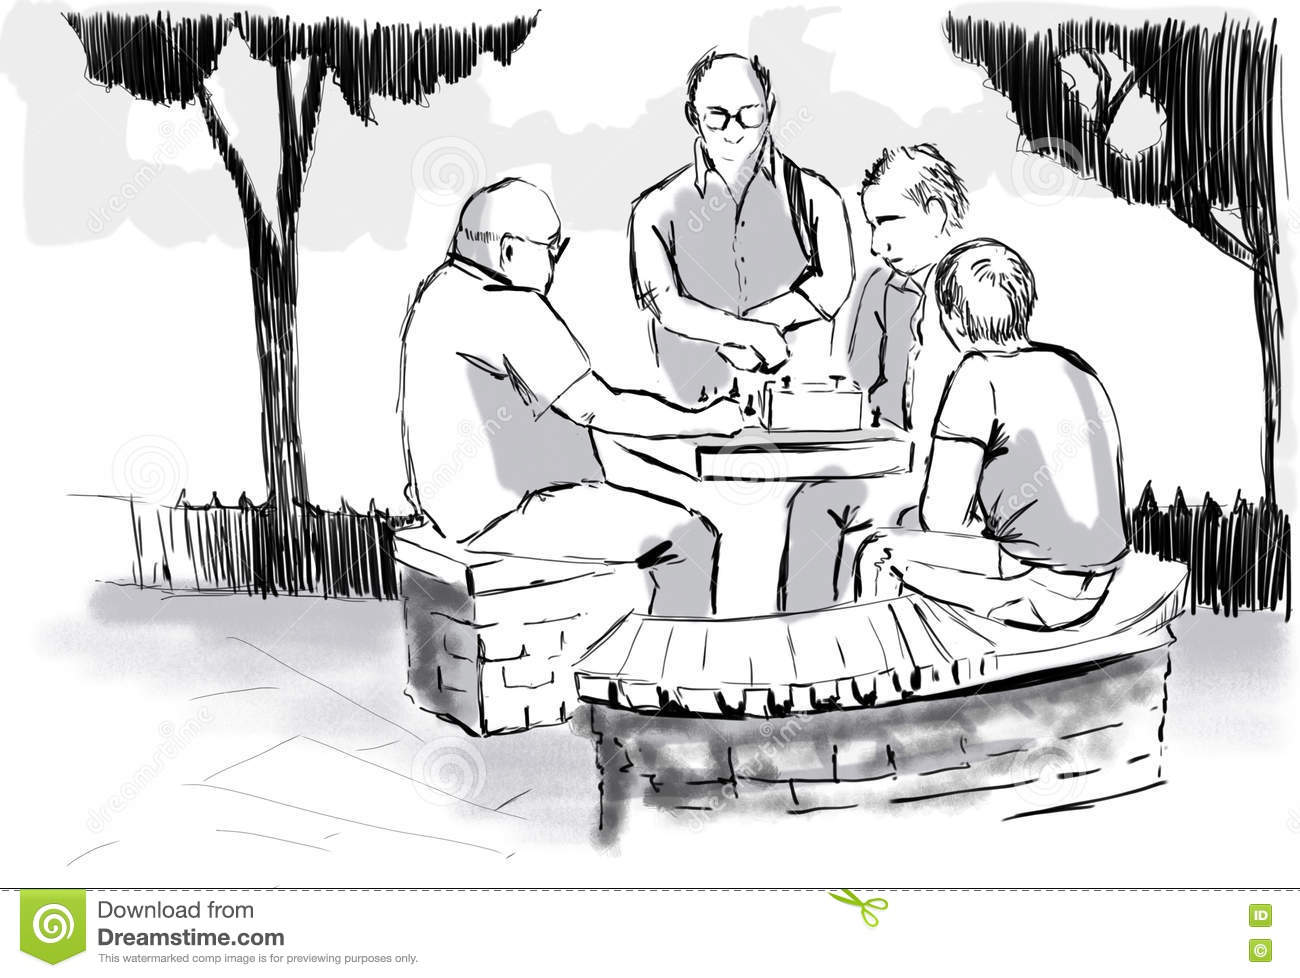 A group of men playing chess.